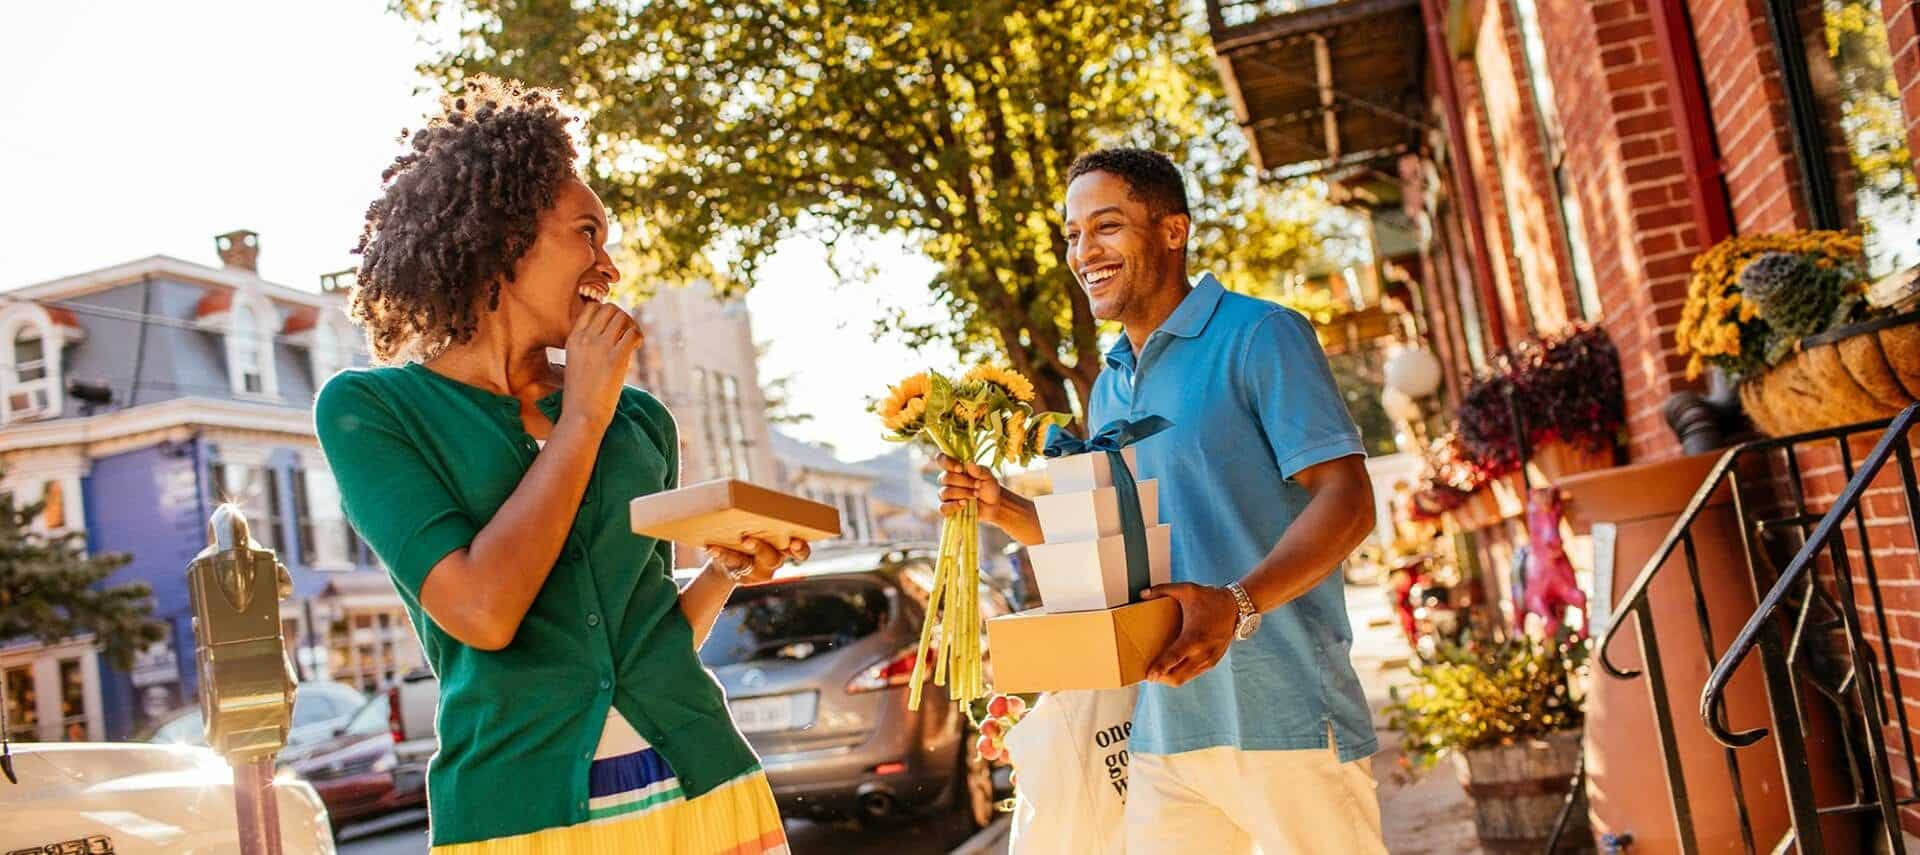 A man and woman smiling and looking at each other while holding packages standing outside on a downtown street